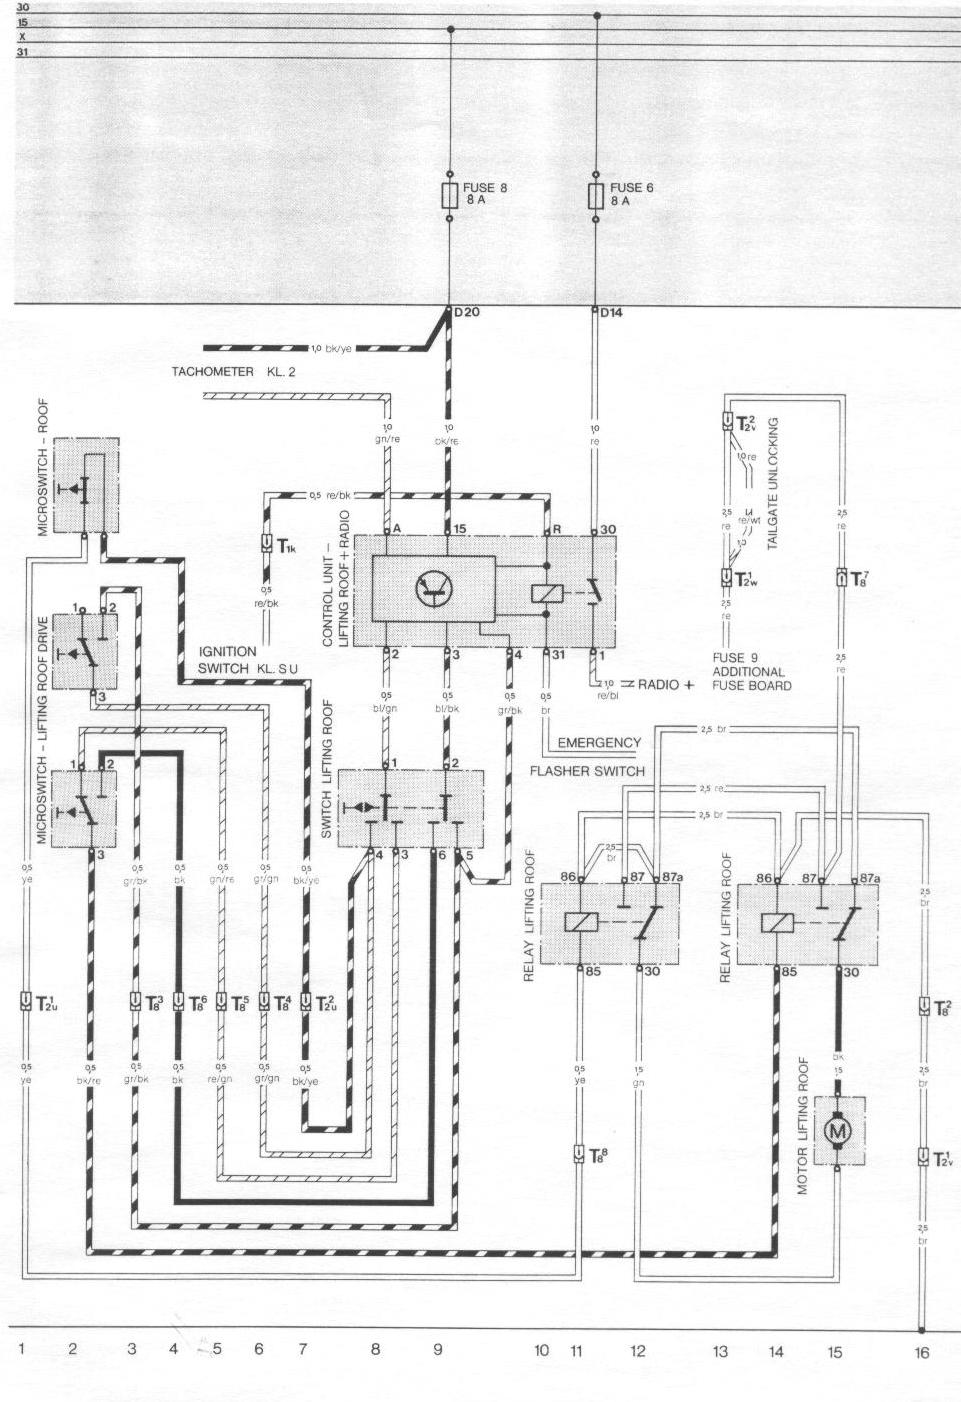 944_84_sunroof pelican parts porsche 924 944 electrical diagrams 1984 porsche 944 fuse box diagram at webbmarketing.co